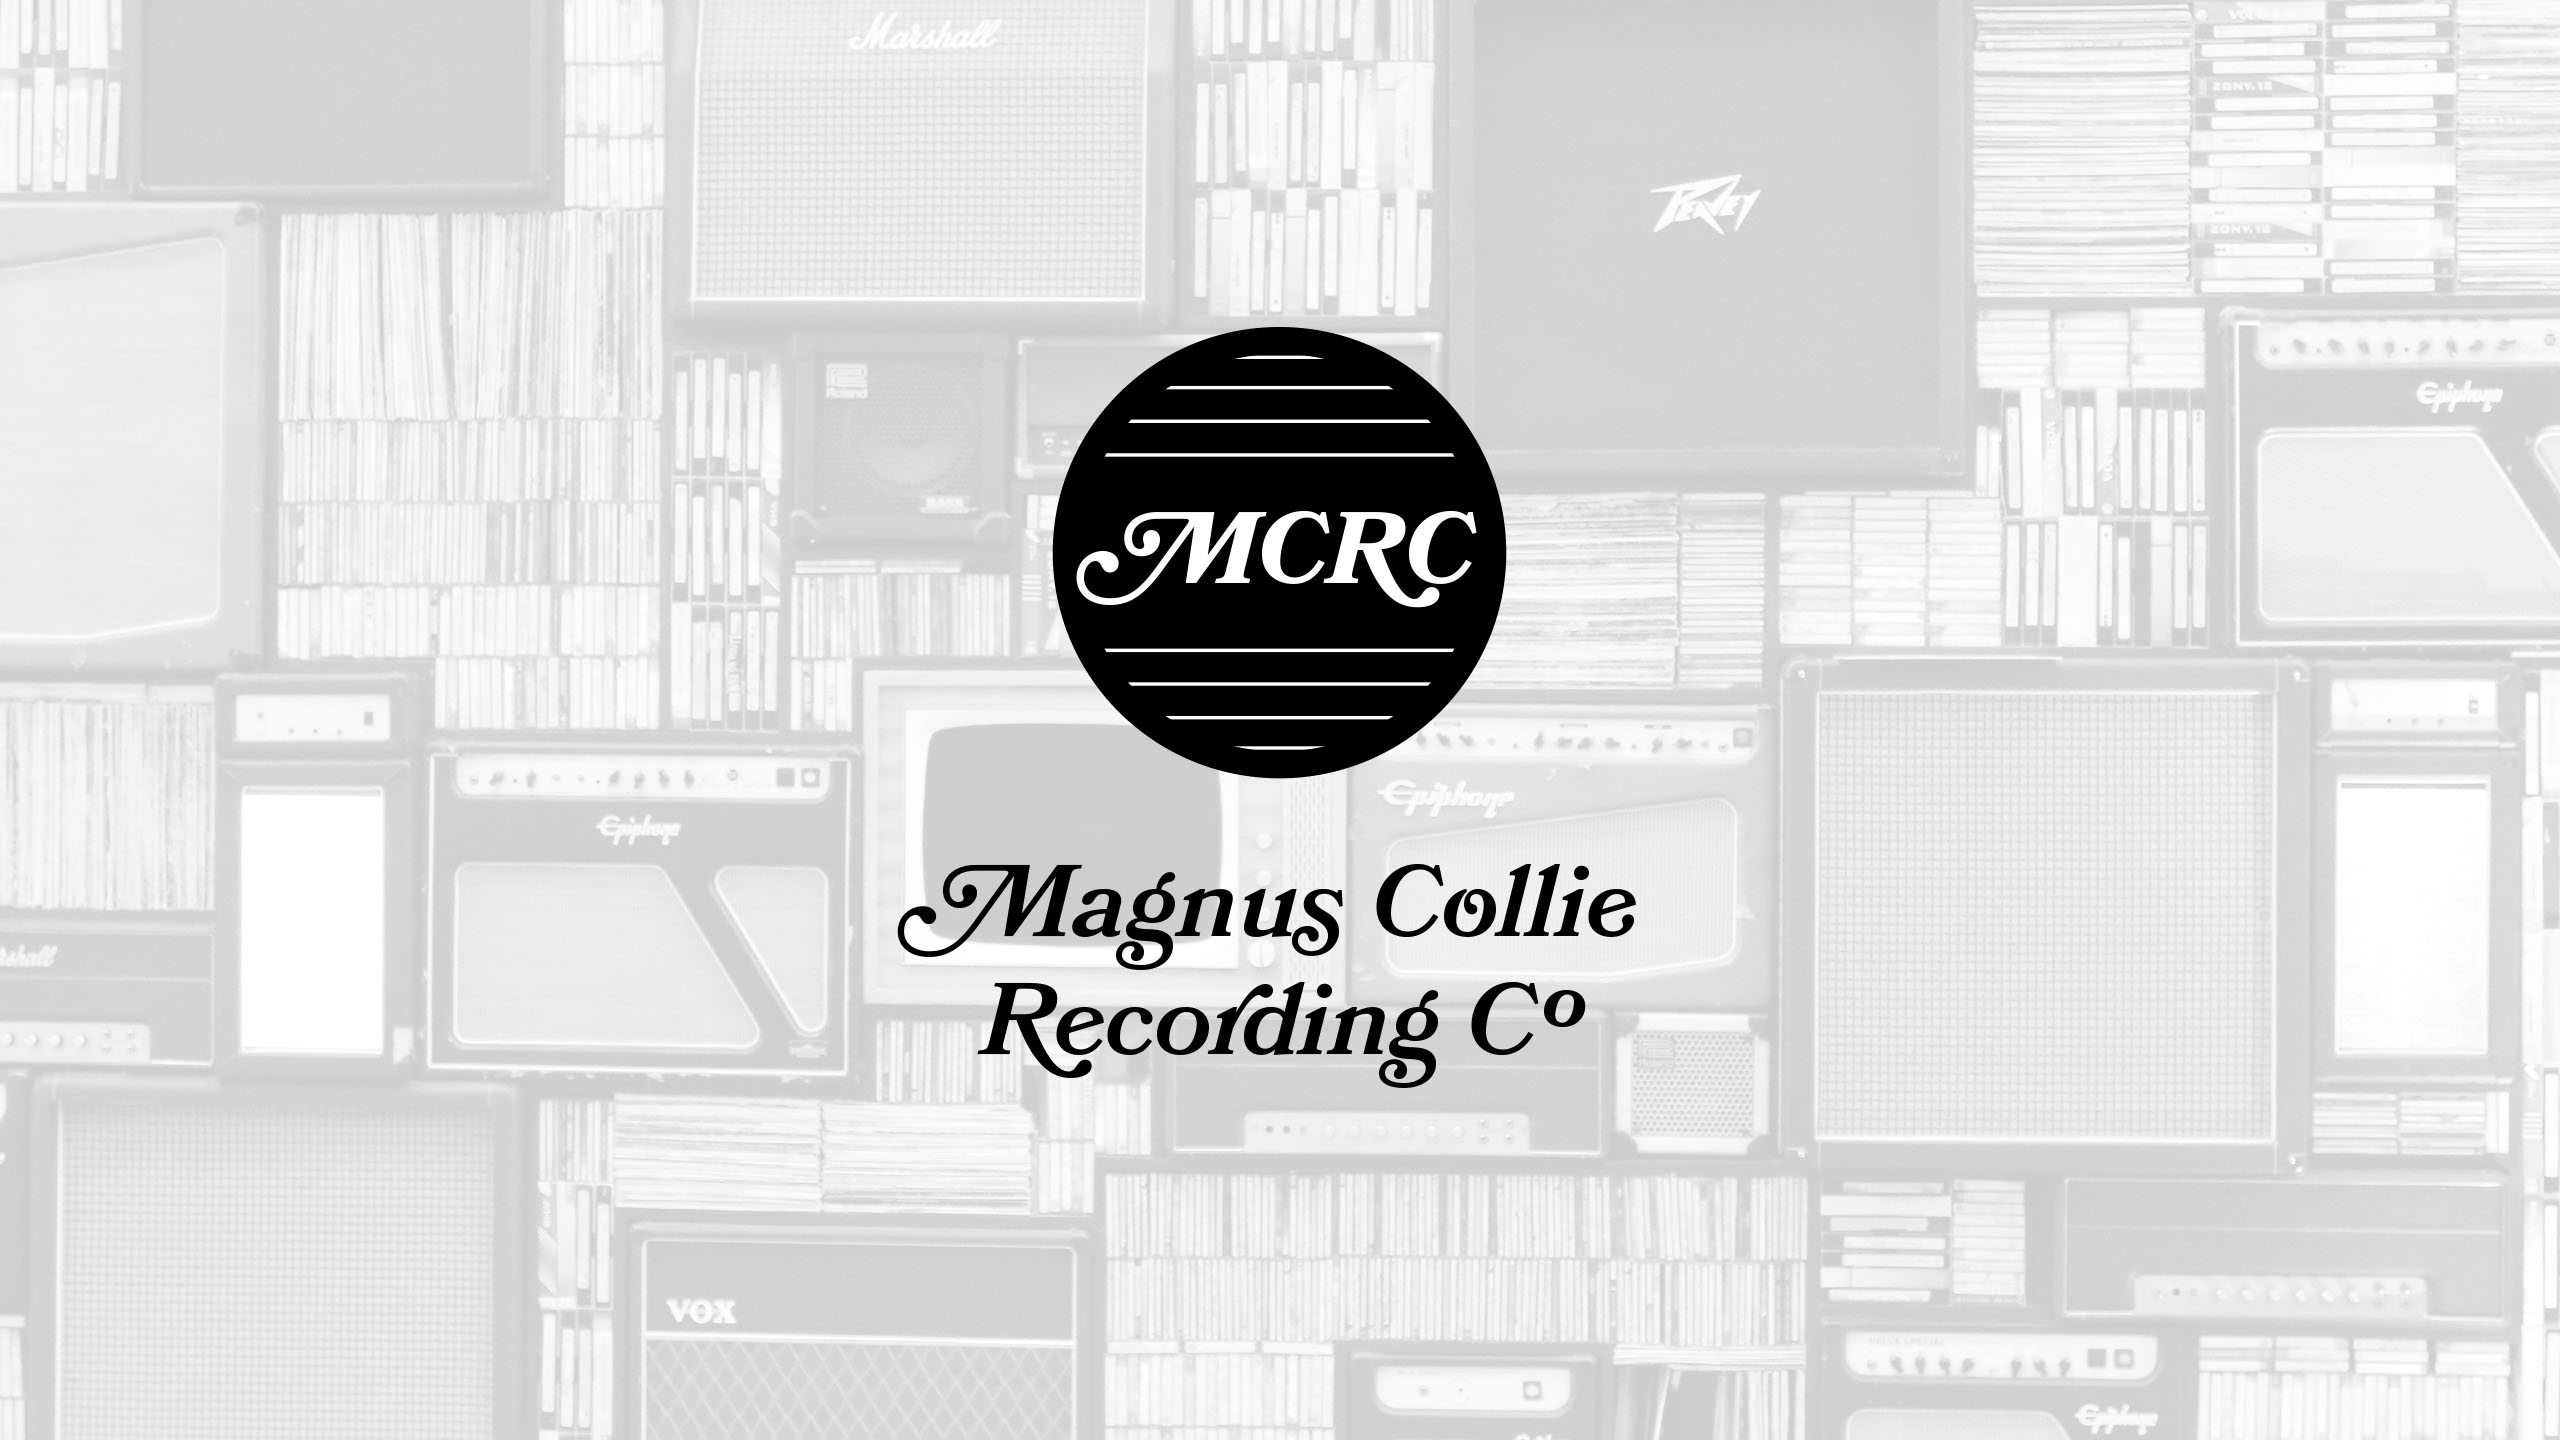 Magnus Collie Recording Co.